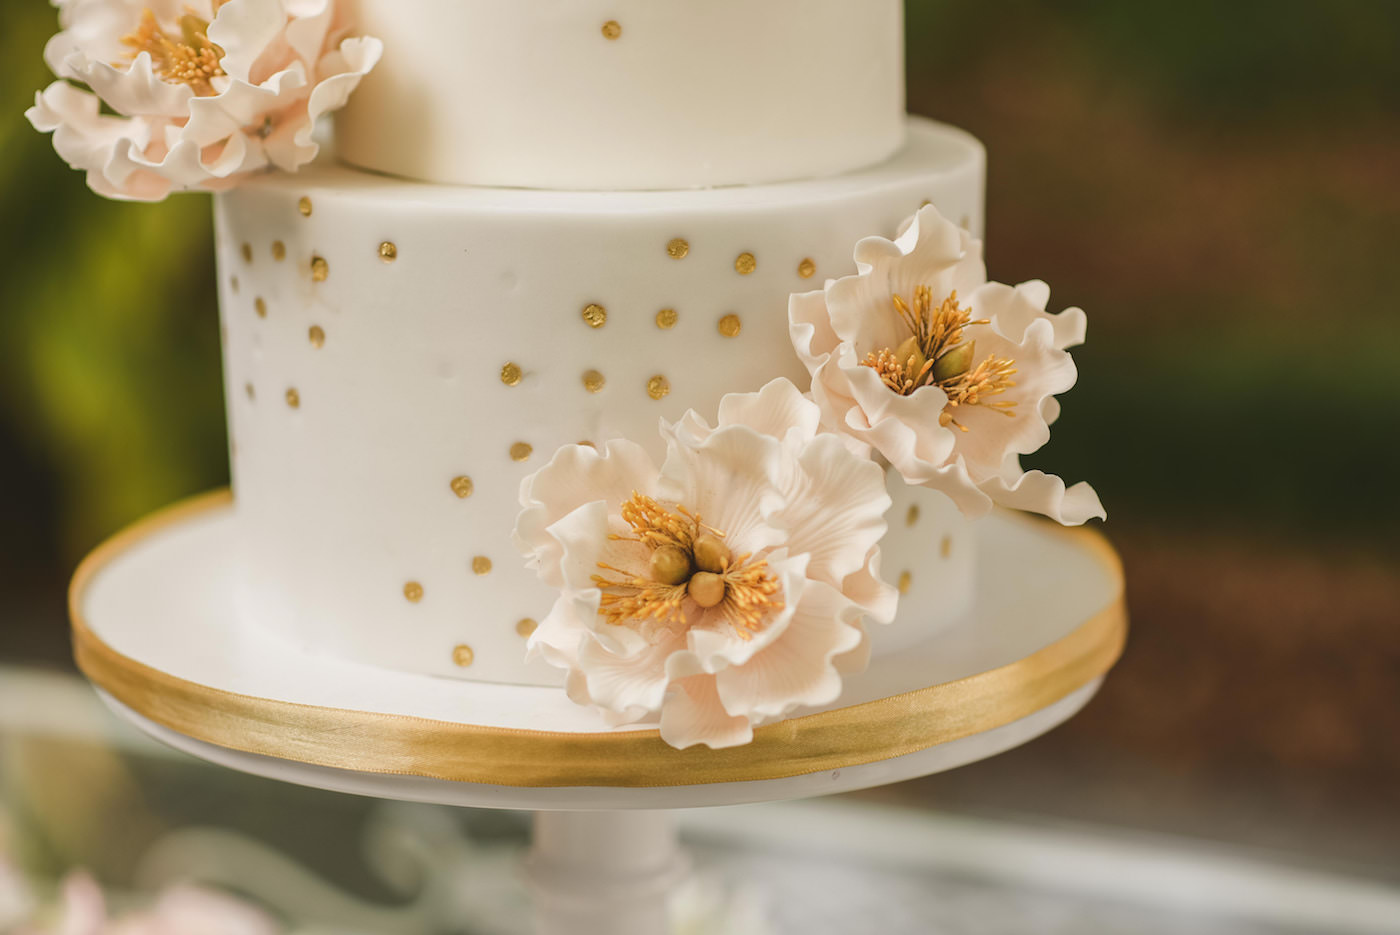 Tampa Bay Cake Company Three Tier Wedding Cake with Rose Gold Polka Dots and Blush Pink Sugar Flower Peonies